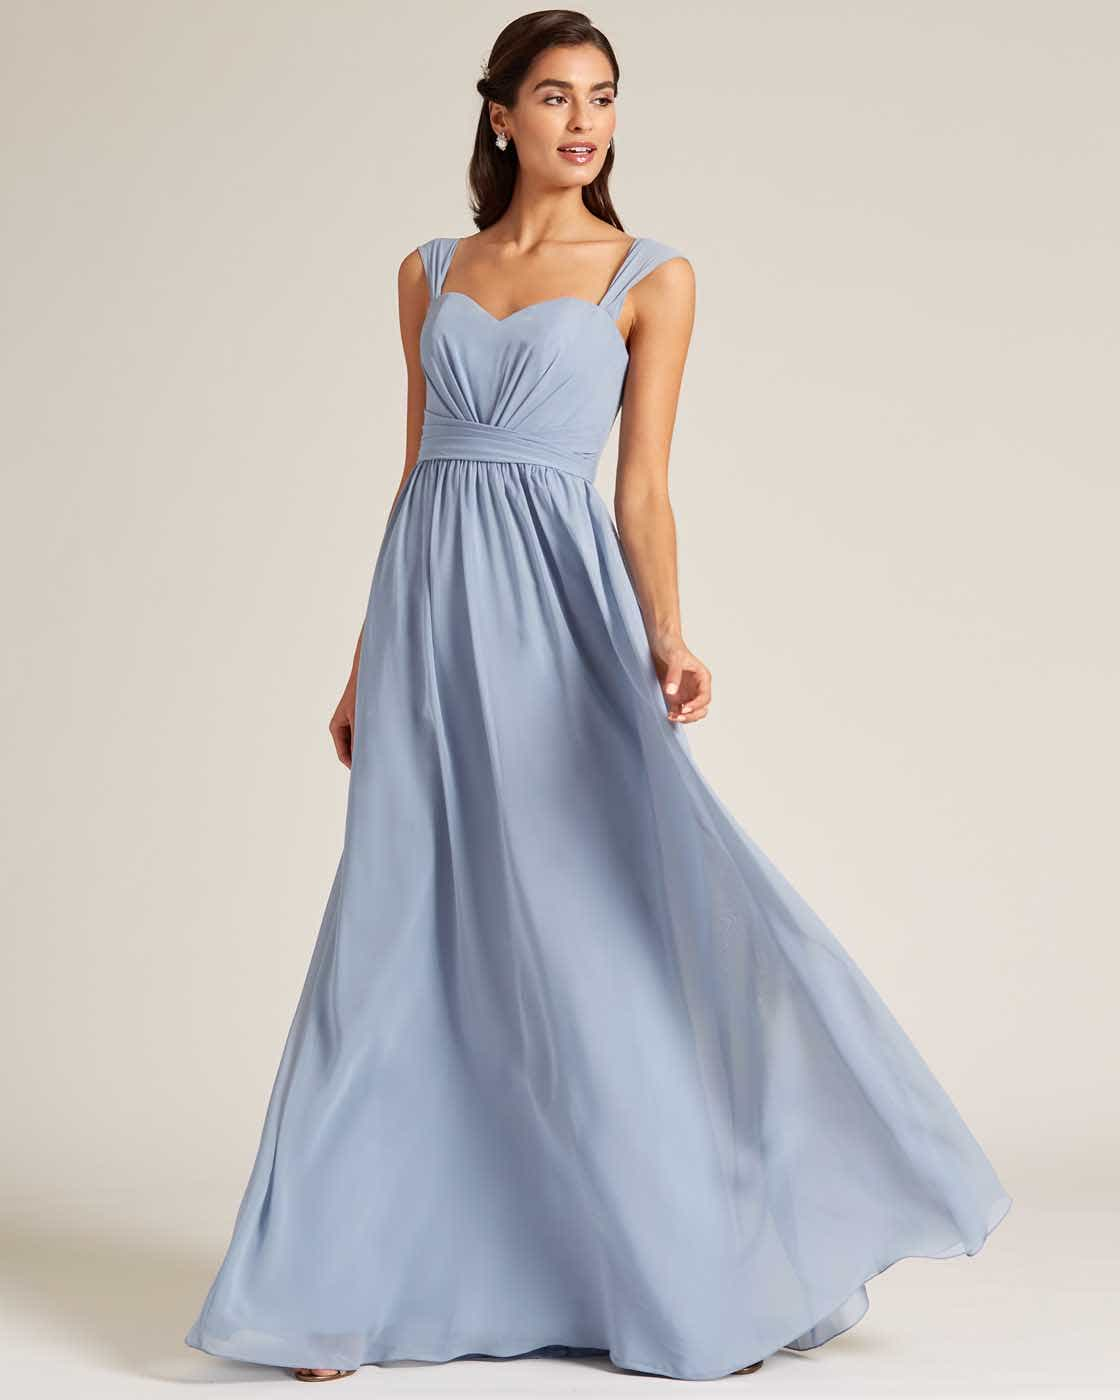 Blue Thick Strap Sweetheart Neckline Dress - Front